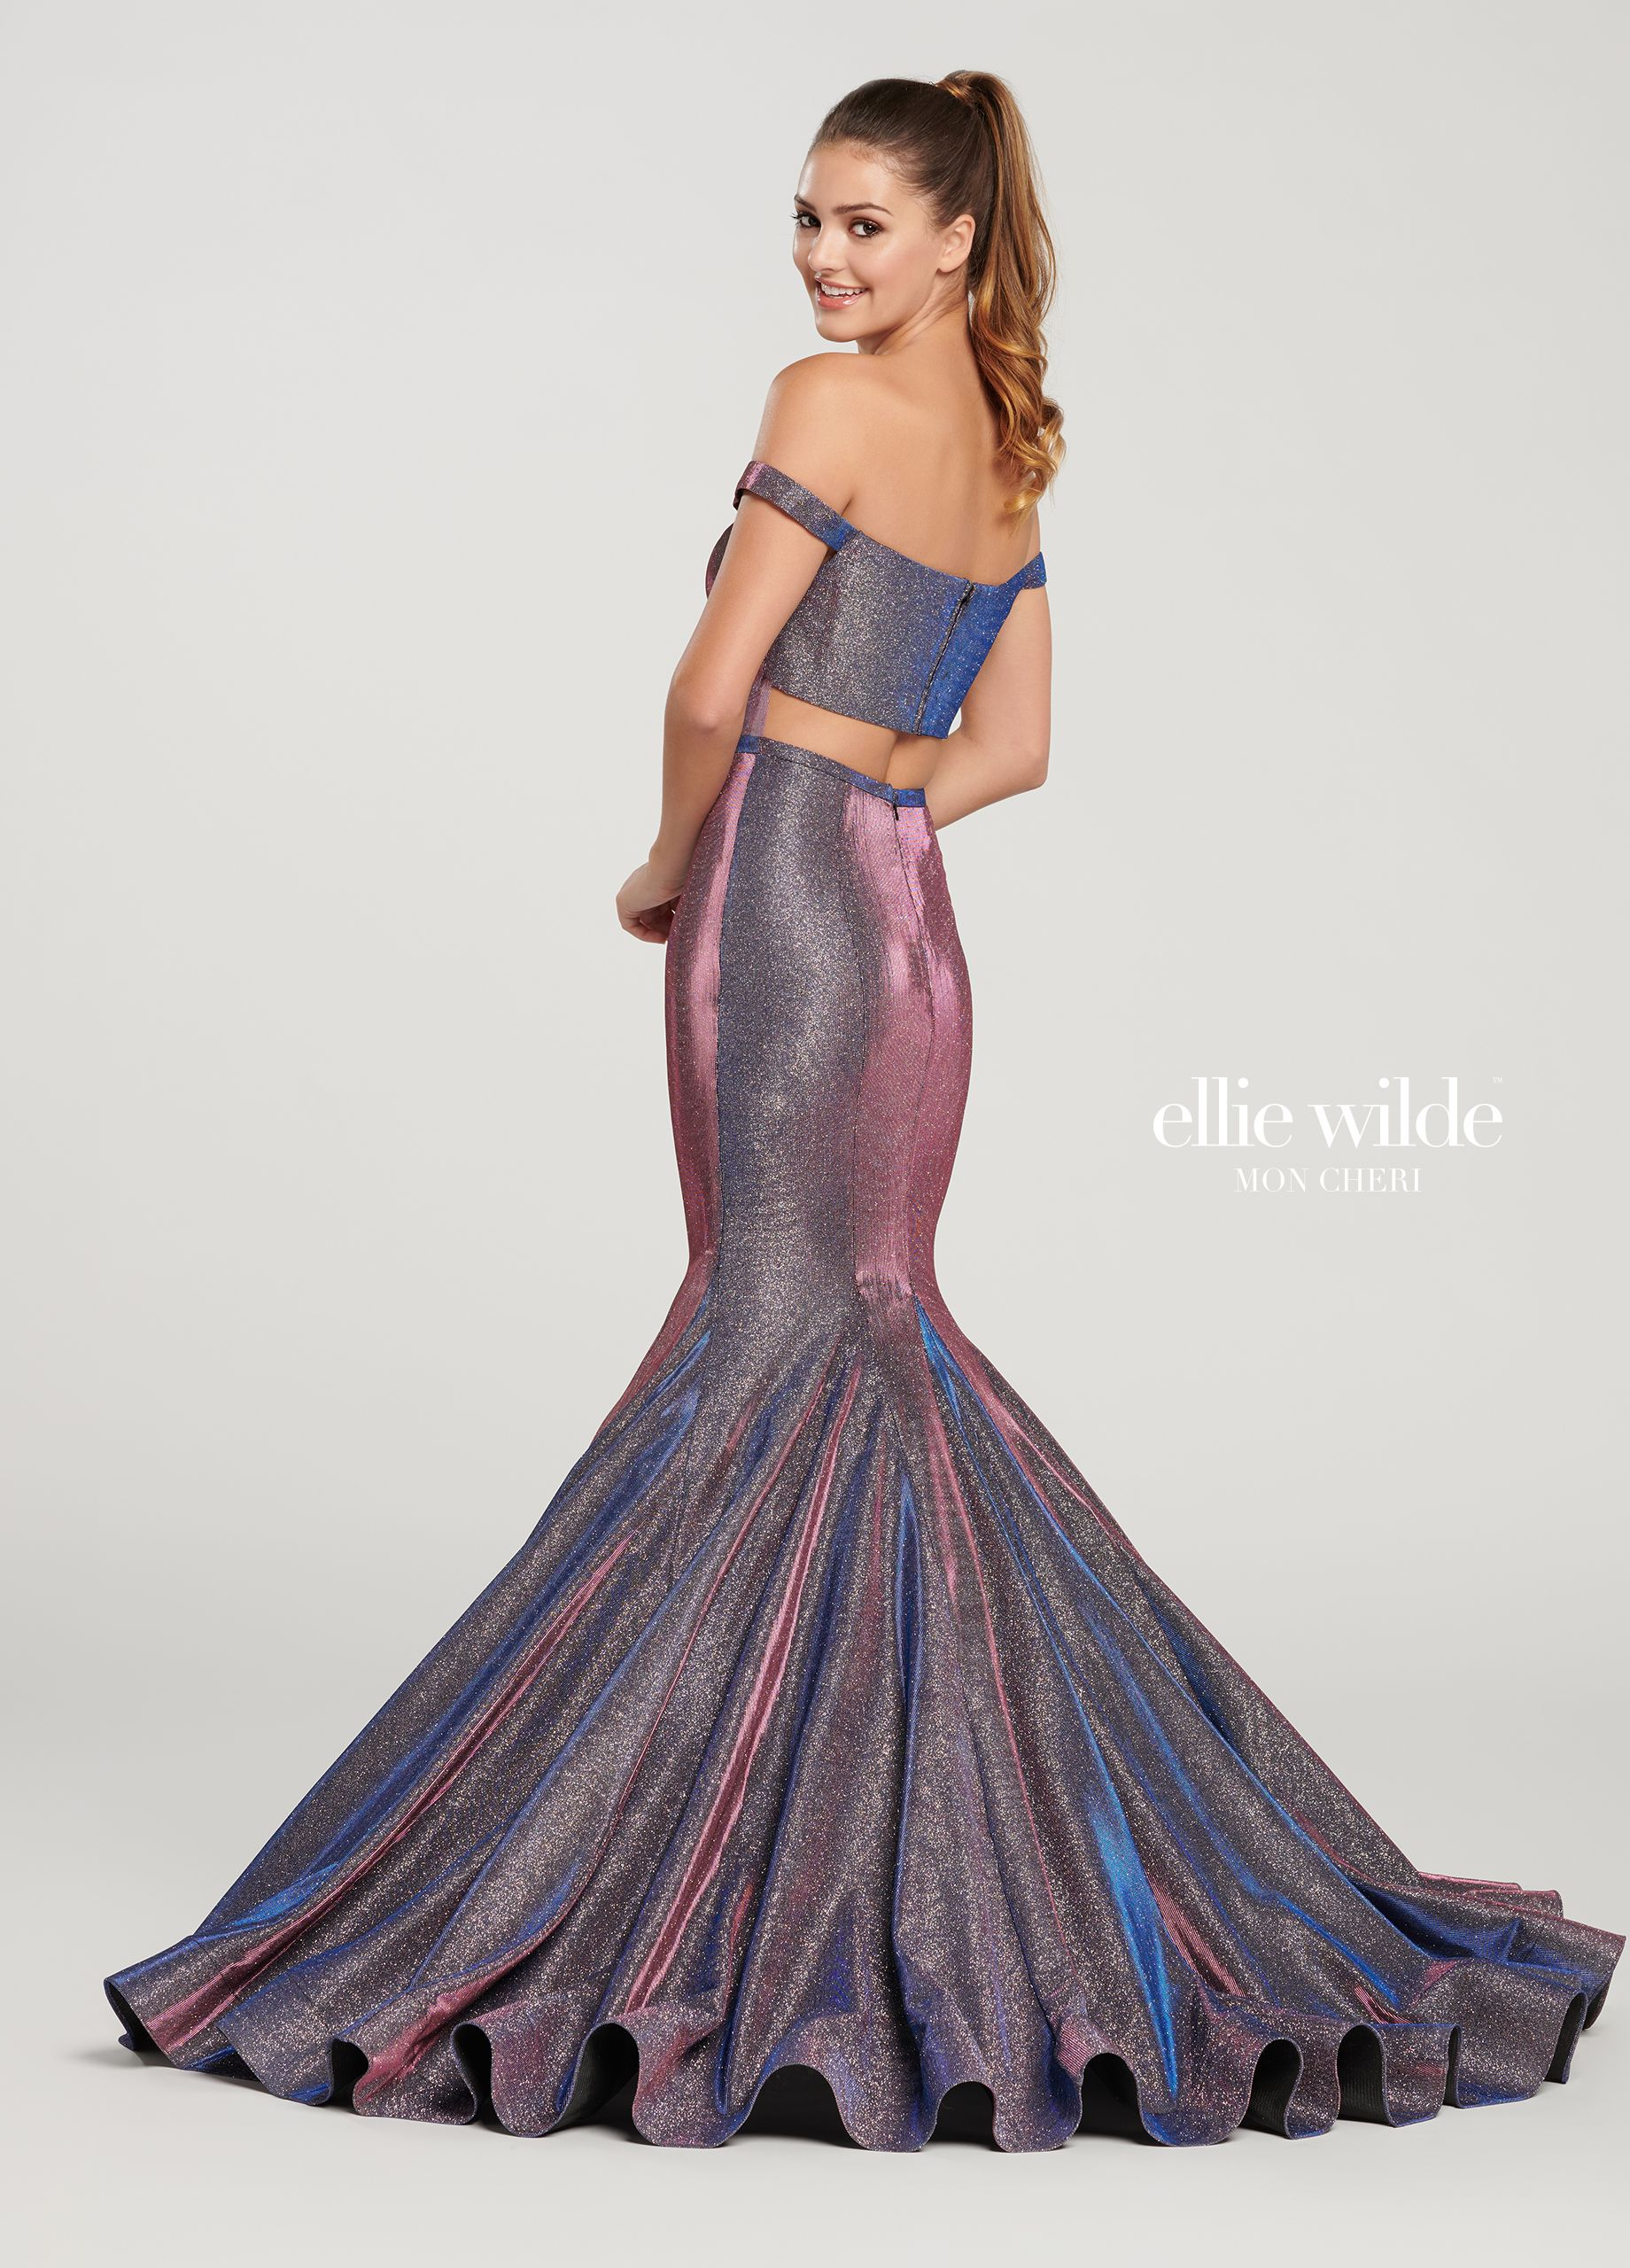 Ellie Wilde EW119061 - Live out your mermaid fantasies in this illuminating  off-the-shoulder novelty stretch glitter mermaid gown with princess lines fe0d56ddd